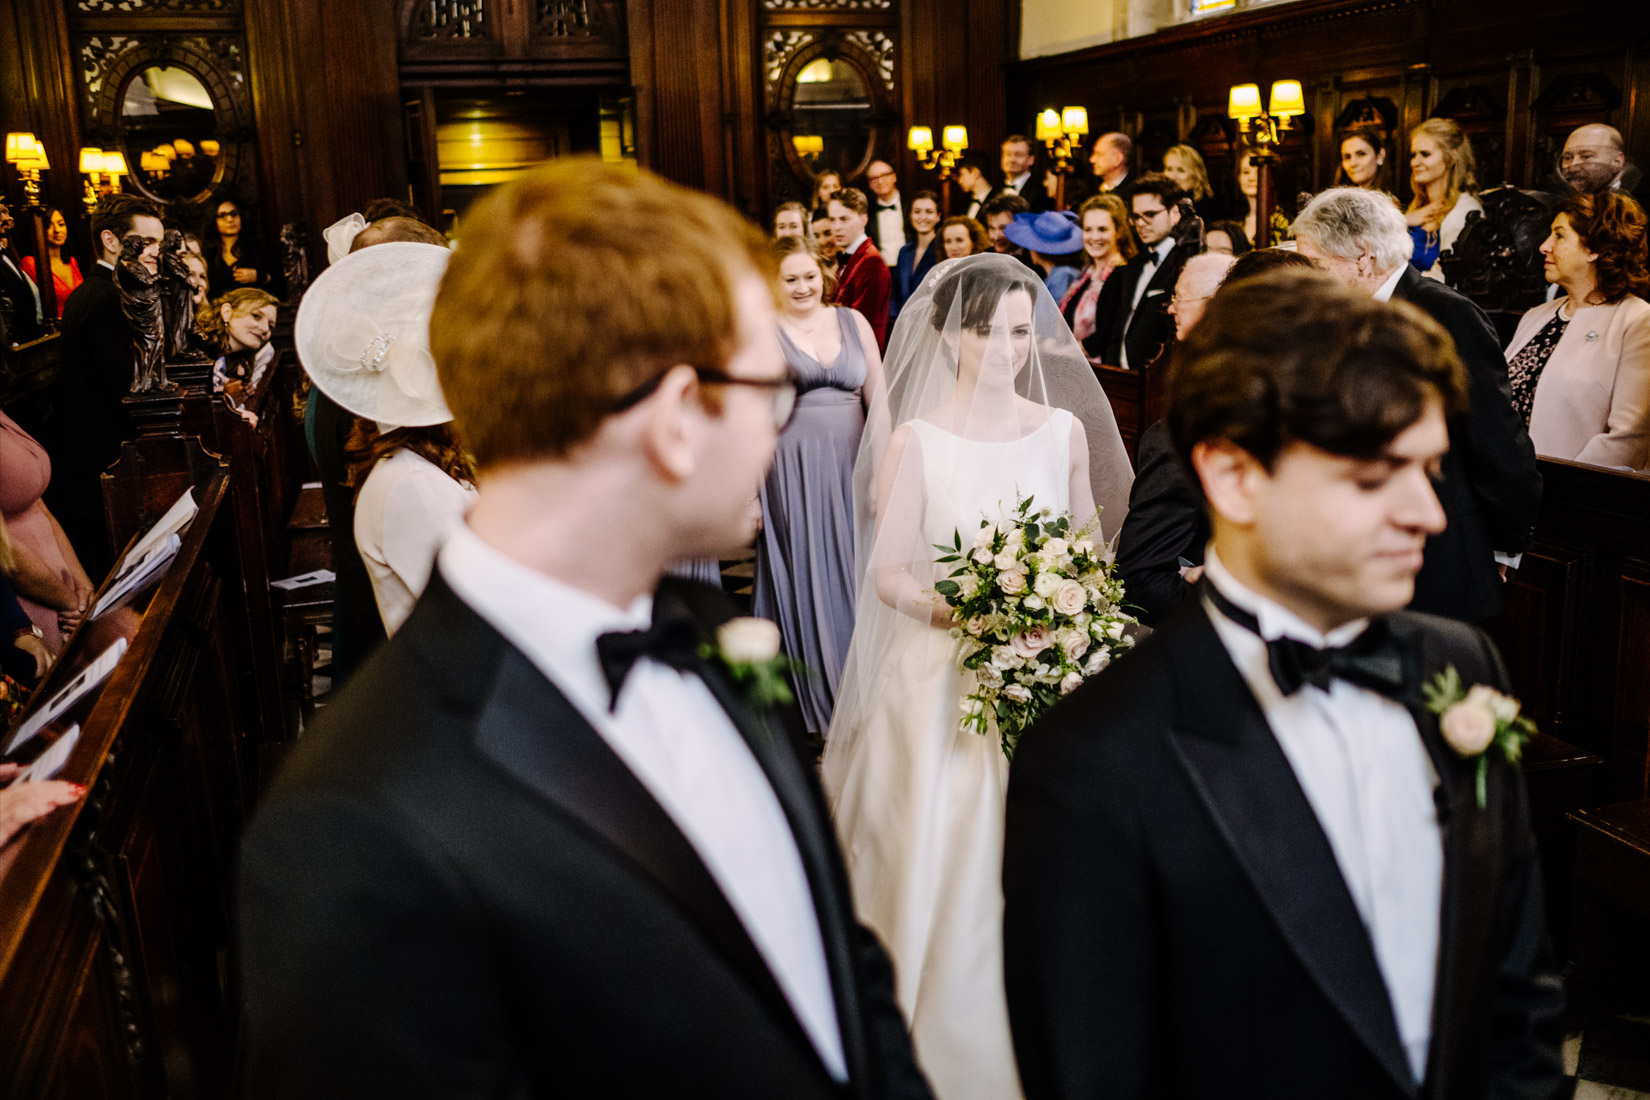 Bodleian Library Wedding Photography of Daisy and Adam's wedding by Sam and Steve Photography